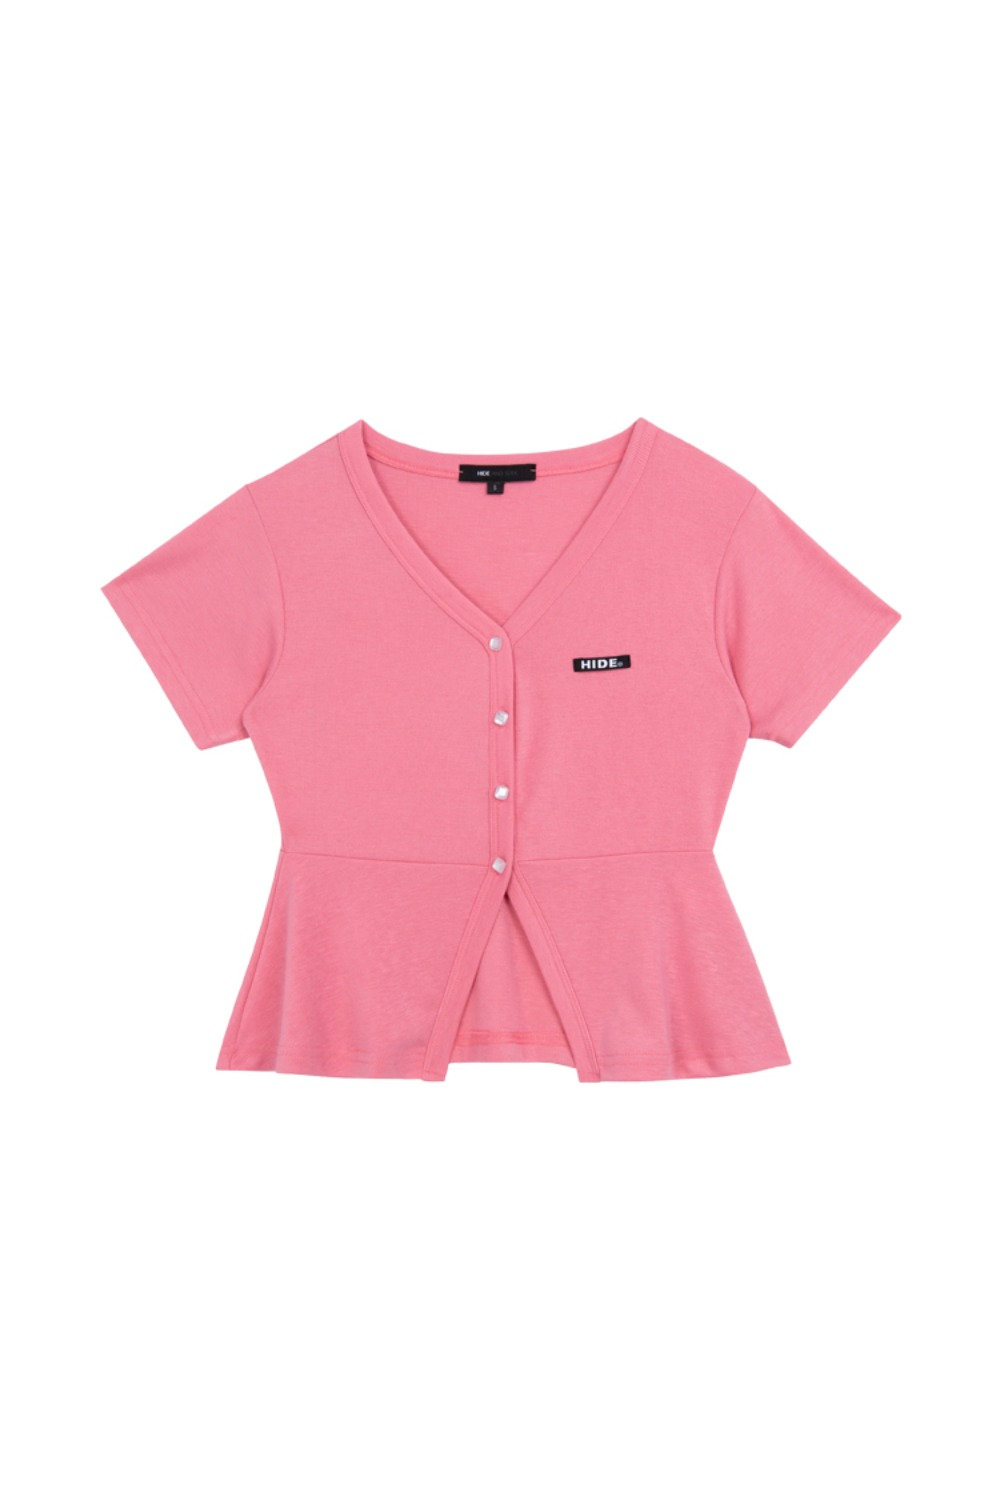 HIDE Frill Button Top PINK